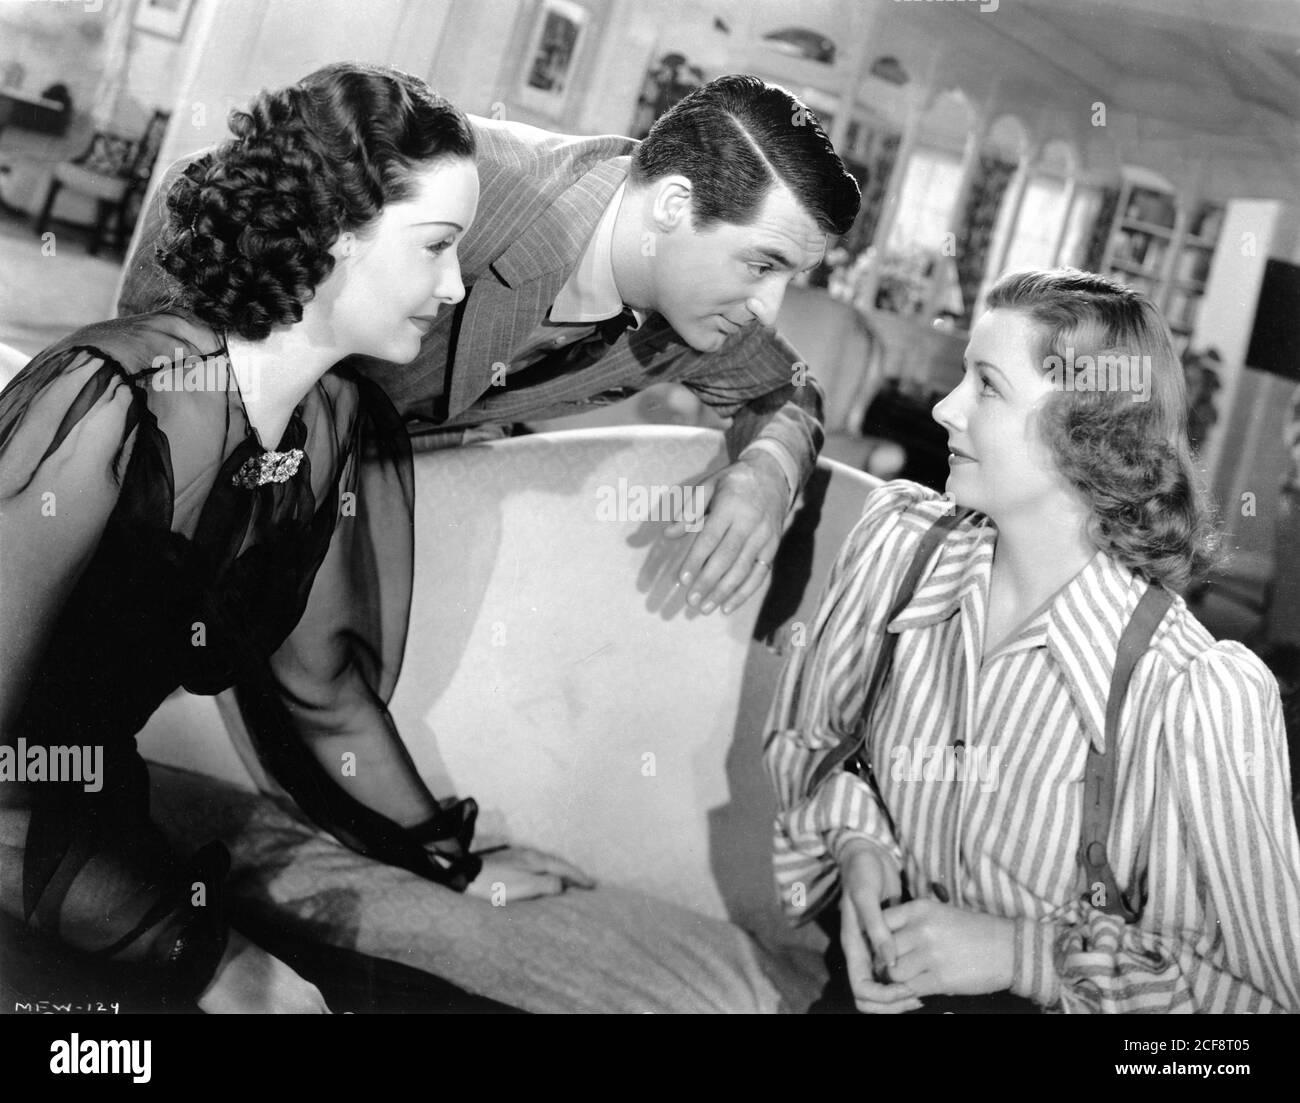 GAIL PATRICK CARY GRANT and IRENE DUNNE in MY FAVORITE WIFE 1940 director  GARSON KANIN producer LEO McCAREY RKO Radio Pictures Stock Photo - Alamy